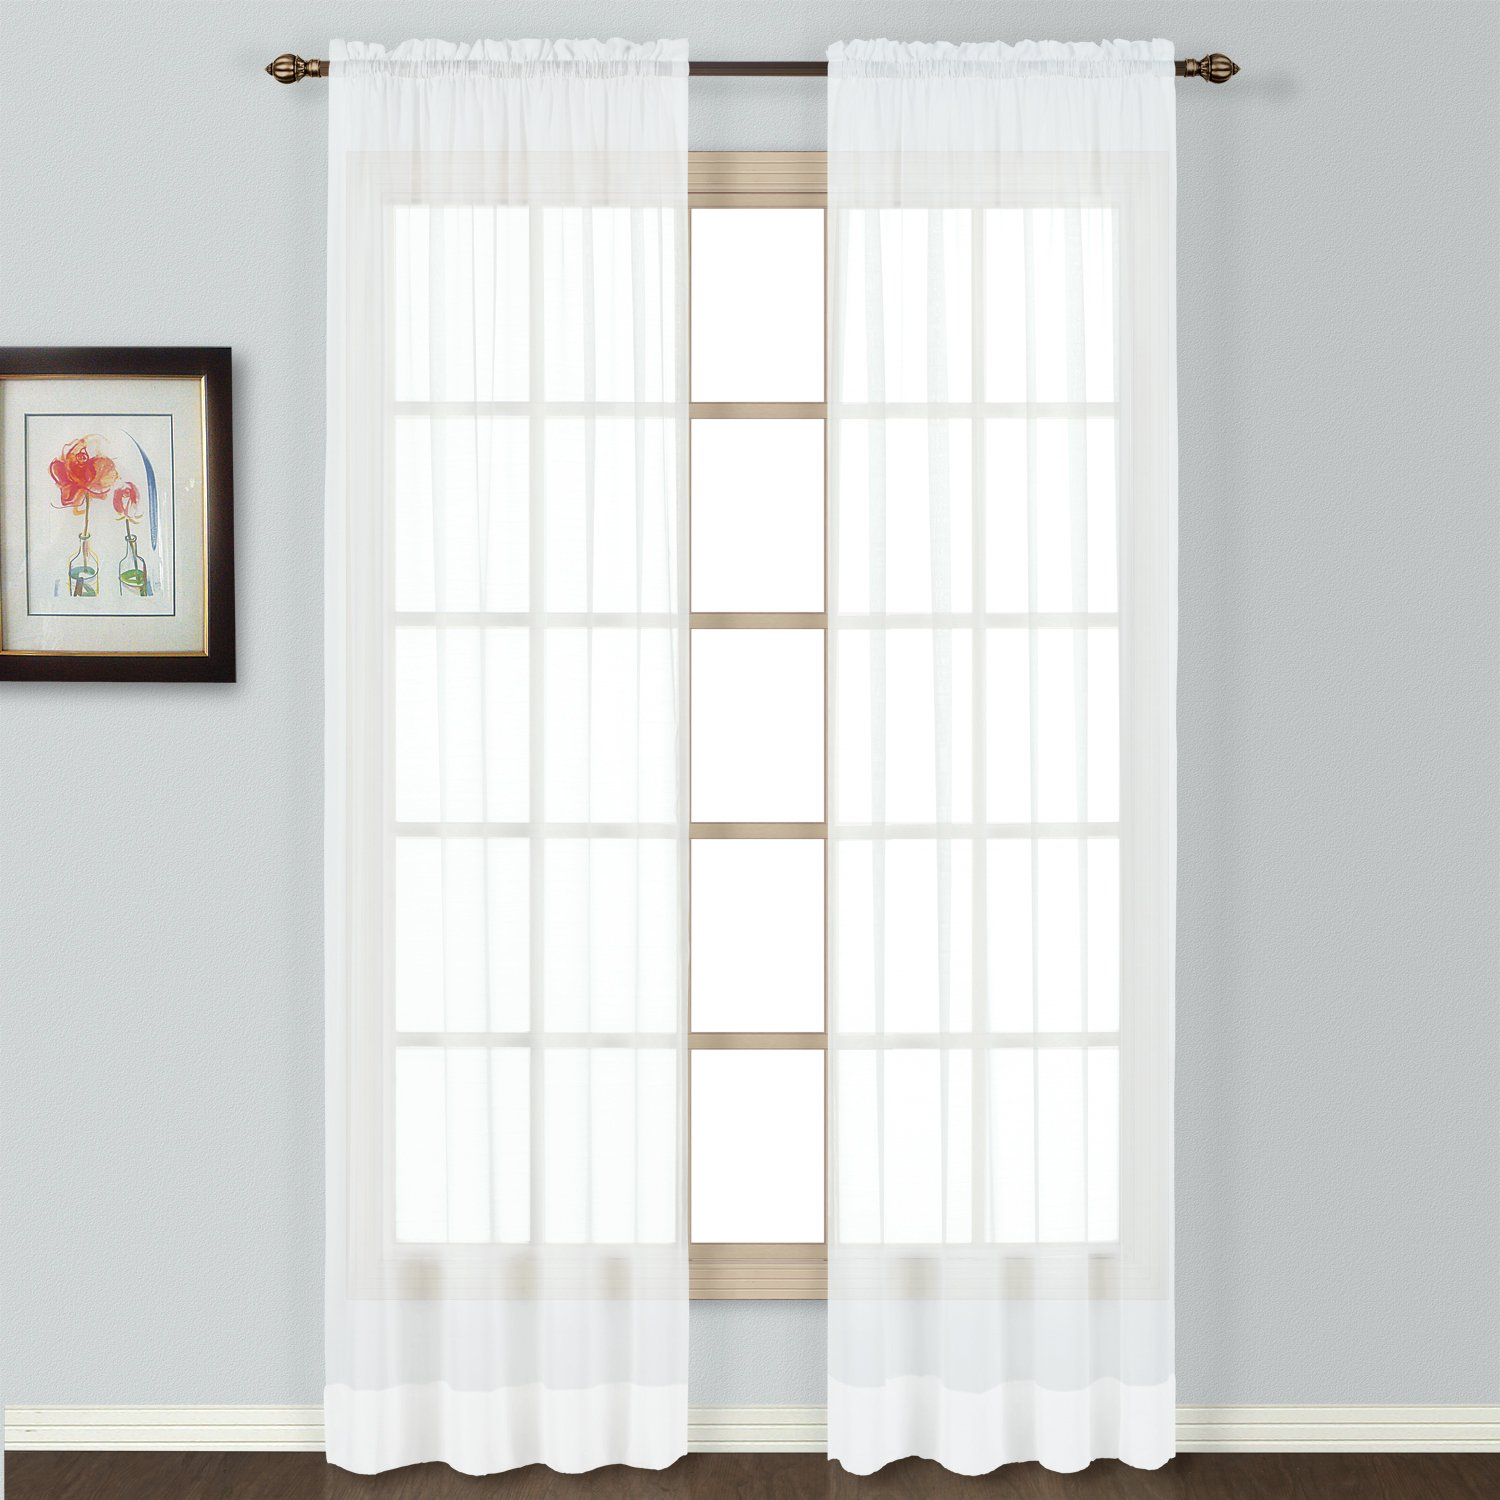 Sheer curtains privacy panel - Amazon Com United Curtain Batiste Semi Sheer Window Curtain Panel 54 By 72 Inch White Home Kitchen